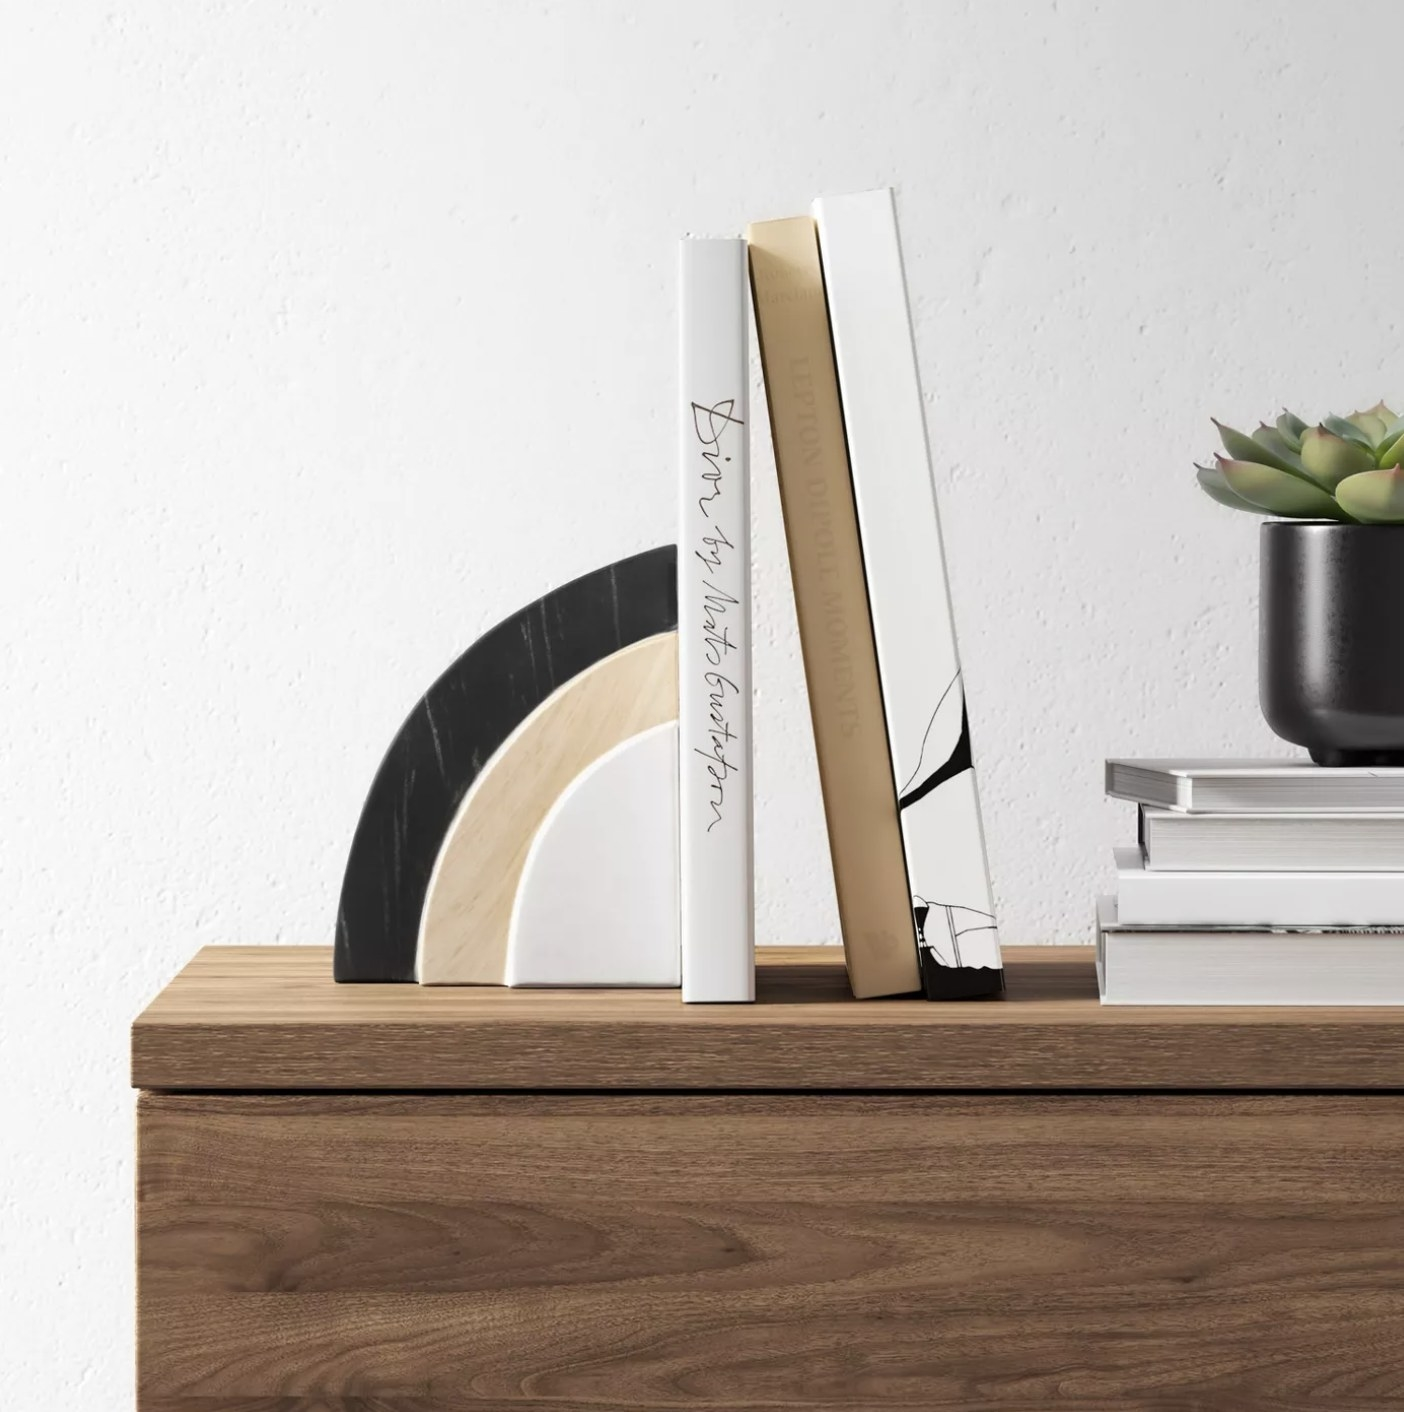 The marble bookend on a table holding up books